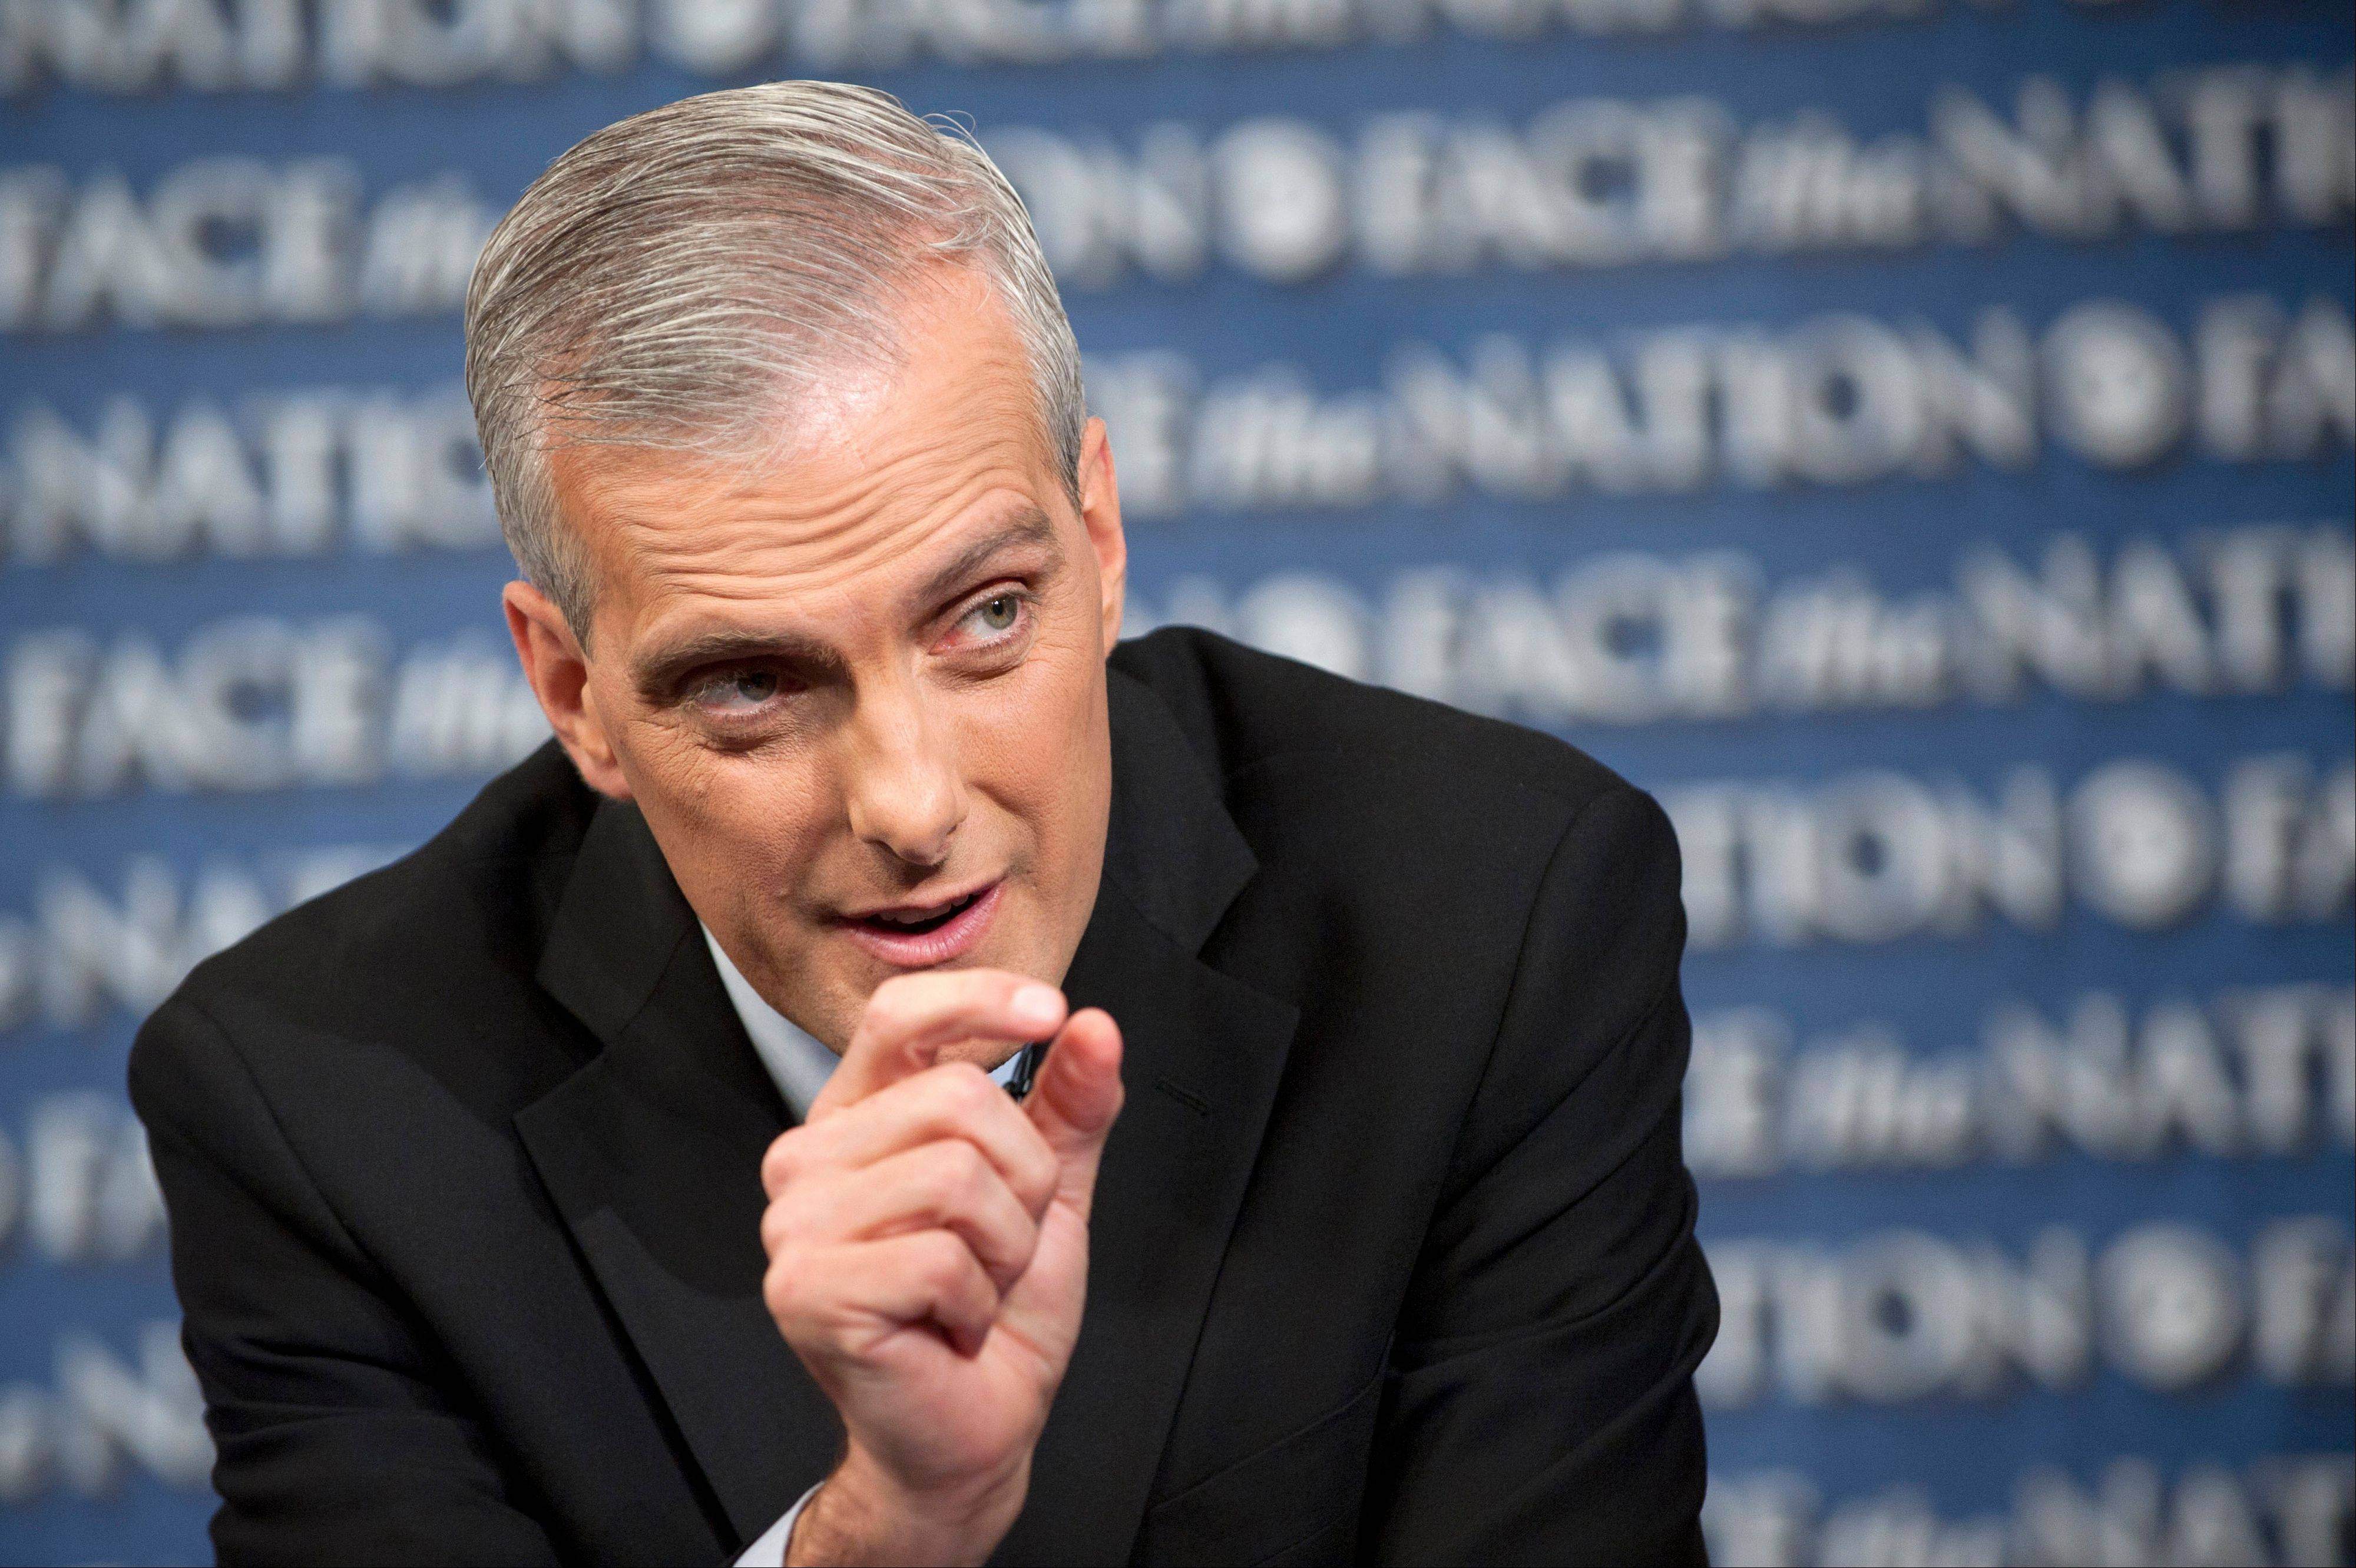 White House Chief-of-Staff Denis McDonough, speaking on CBS�s �Face the Nation,� said Sunday a �common-sense test� dictates the Syrian government is responsible for a chemical weapons attack that President Barack Obama says demands a U.S. military response.